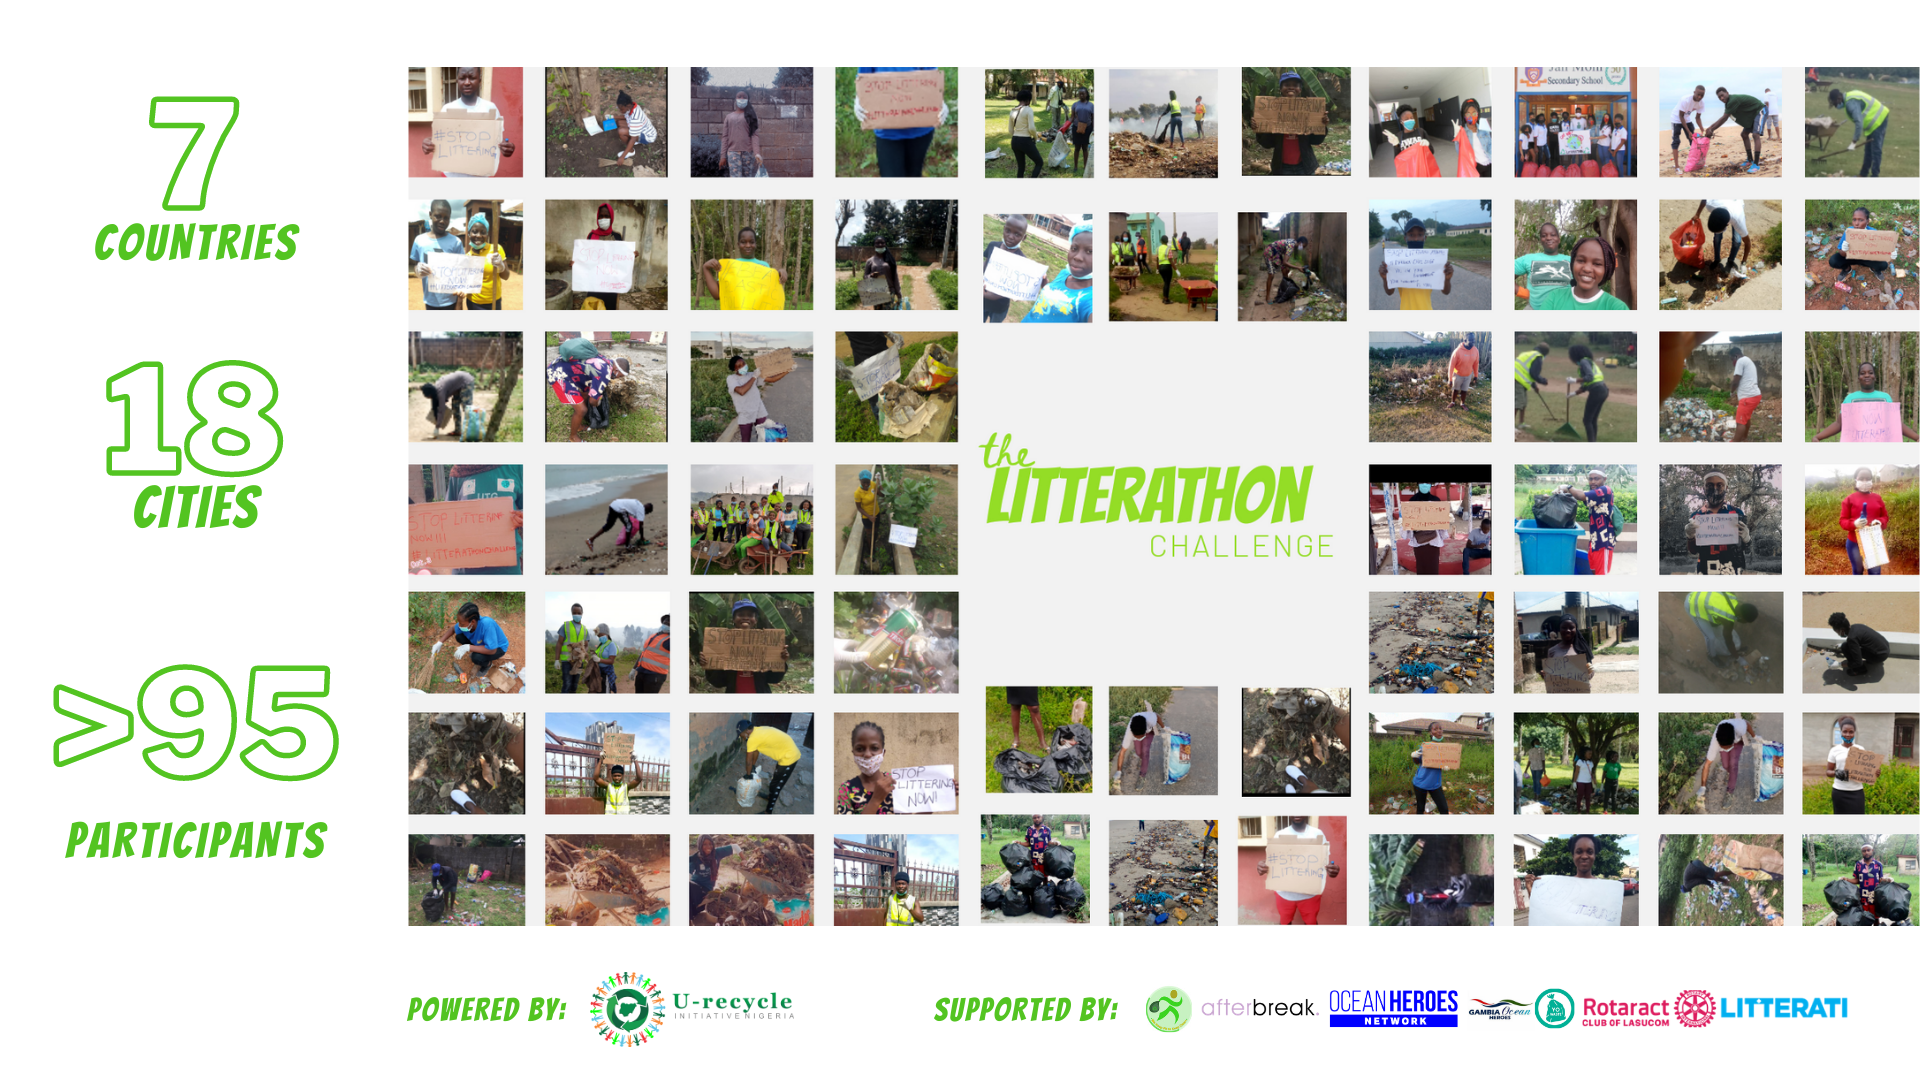 https://www.urecycleinitiative.org/wp-content/uploads/2021/04/7.png